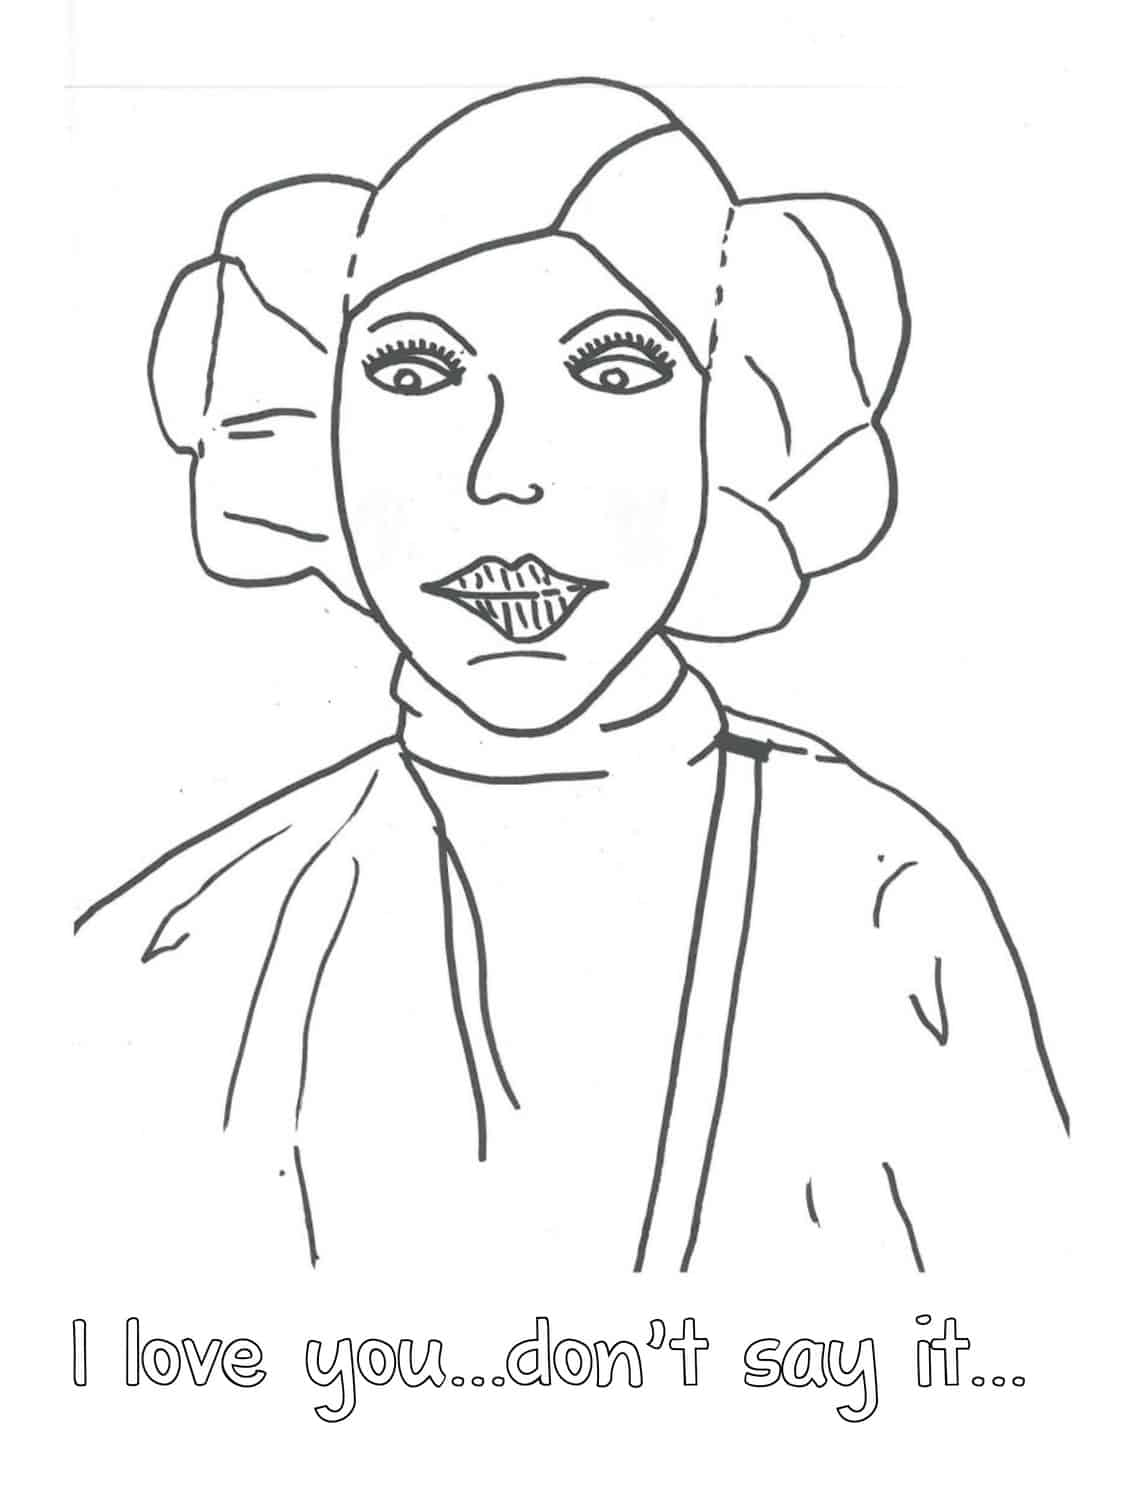 8 More Star Wars Inspired Valentines Coloring Pages Page Princess Leia Coloring Pages Printable